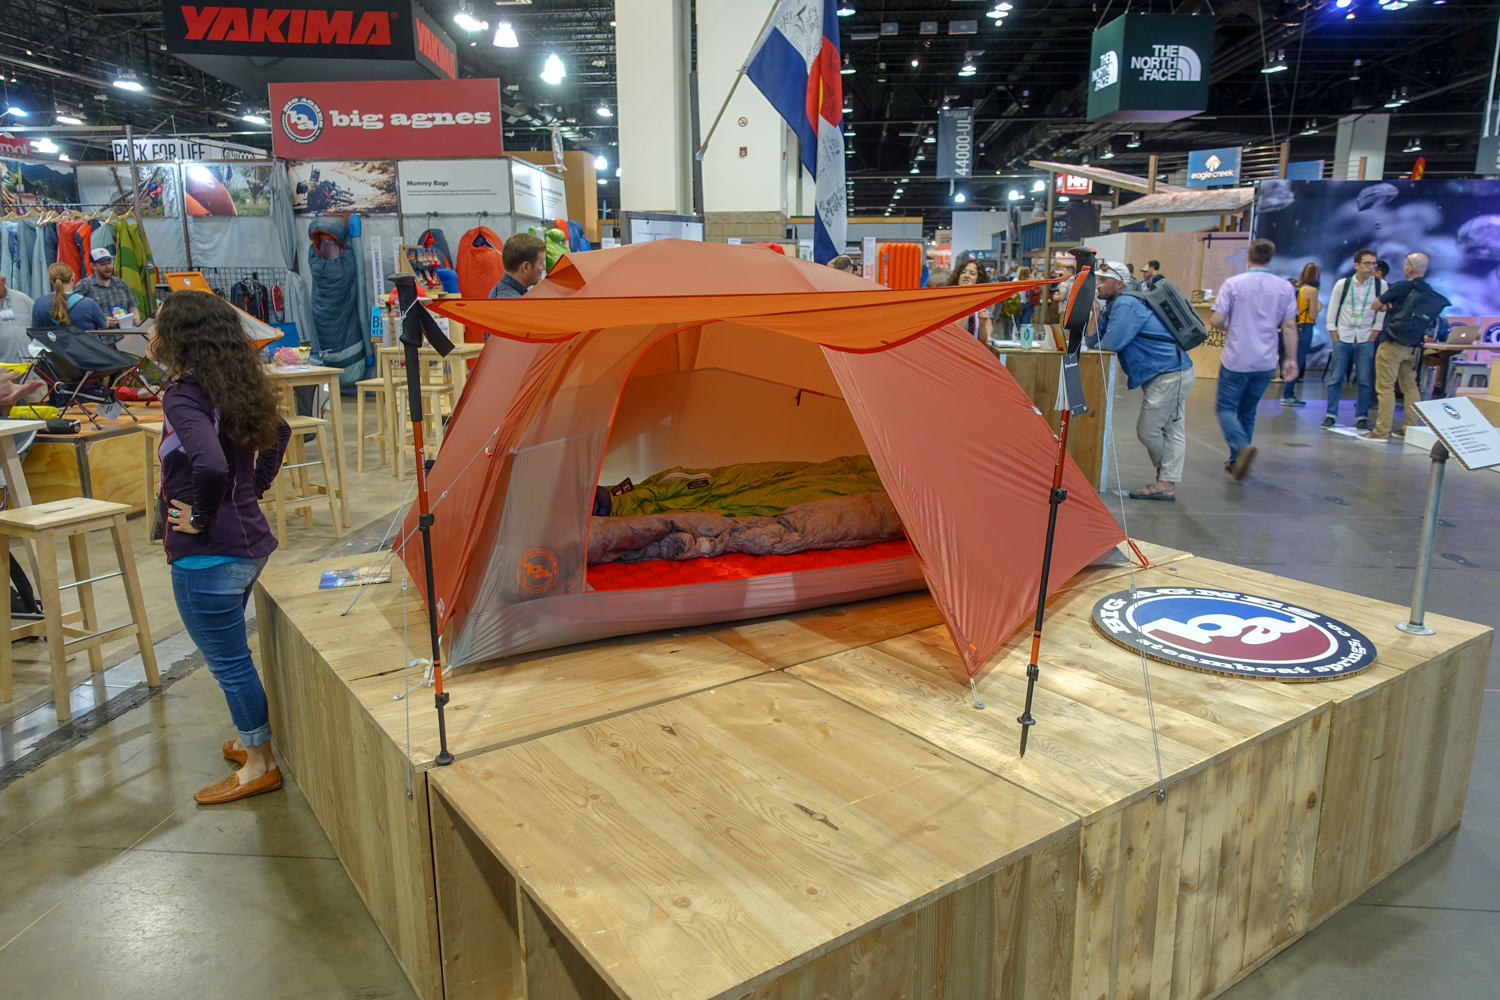 Best Family Tents 2020 35 New and Exciting Products From Outdoor Retailer 2019 — CleverHiker